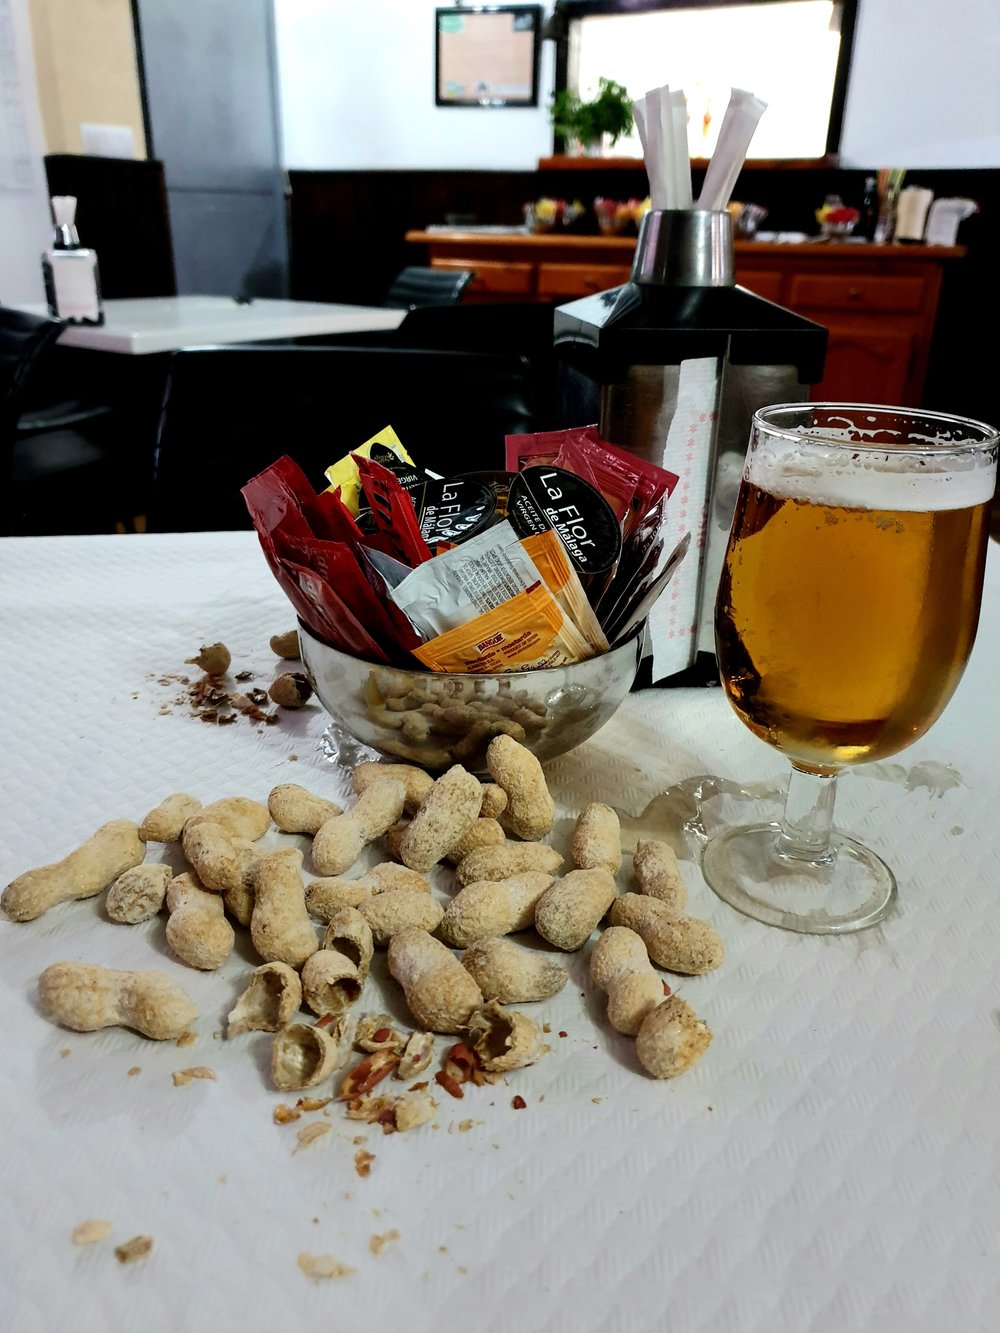 Drinking beer with food (usually more substantial food than peanuts) can alter your expectations.